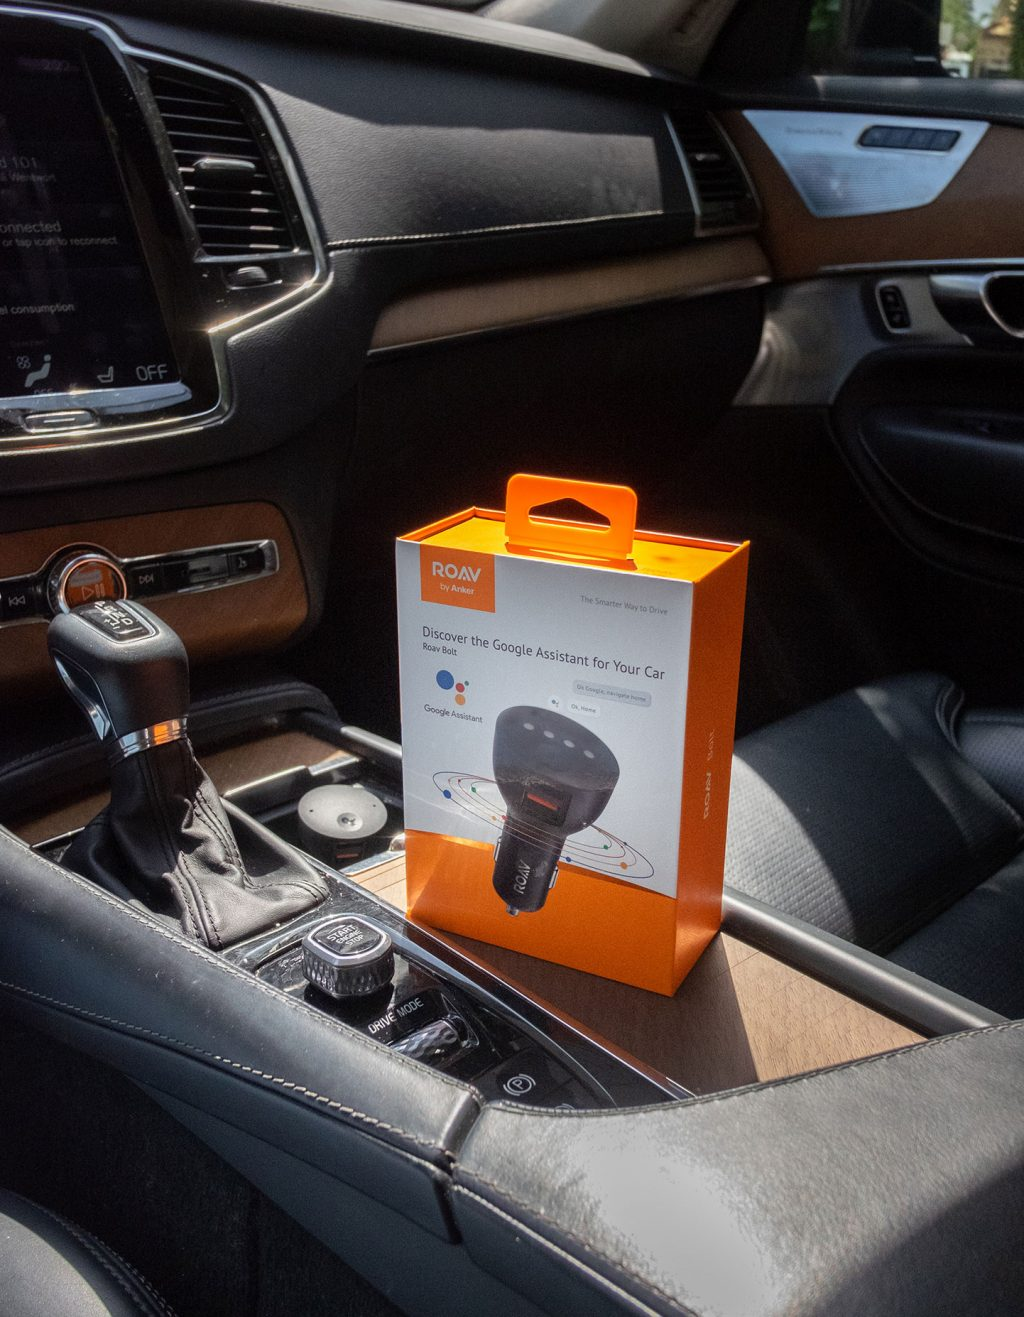 Roav Bolt Car Charger with Google Assistant: The Home Depot